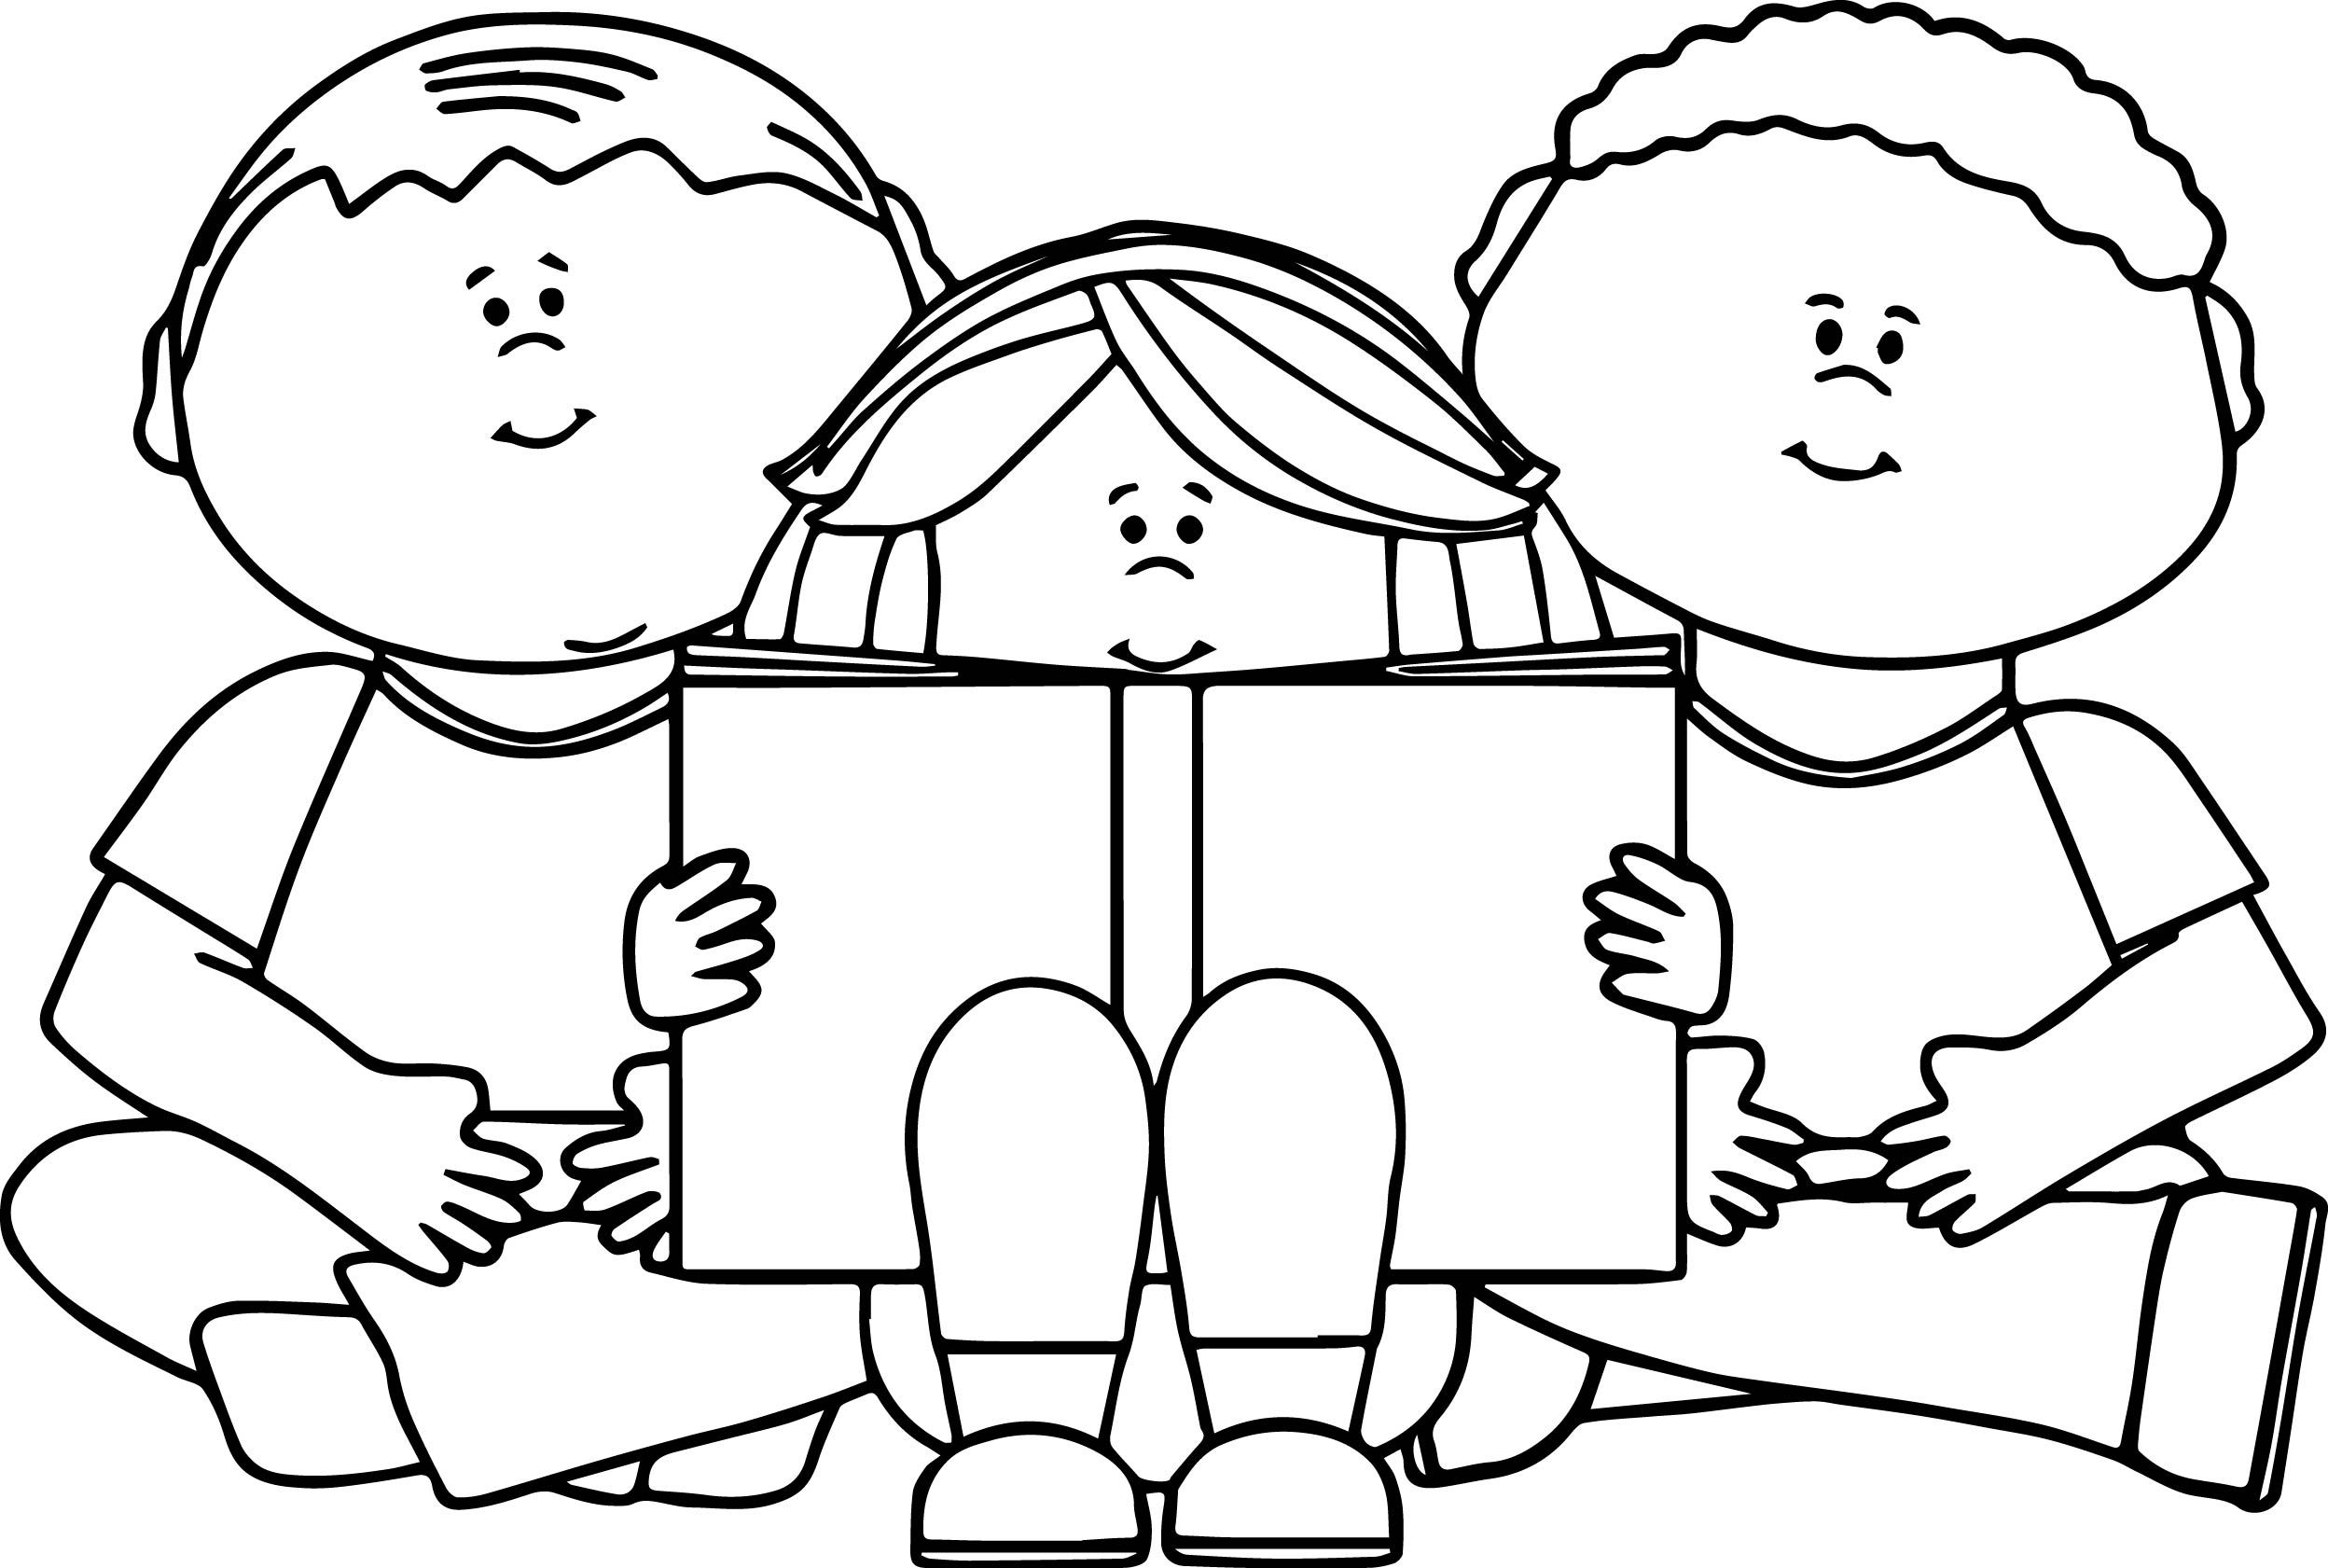 Kids Reading Book Coloring Page Toddler Coloring Book Bible Coloring Pages Bear Coloring Pages